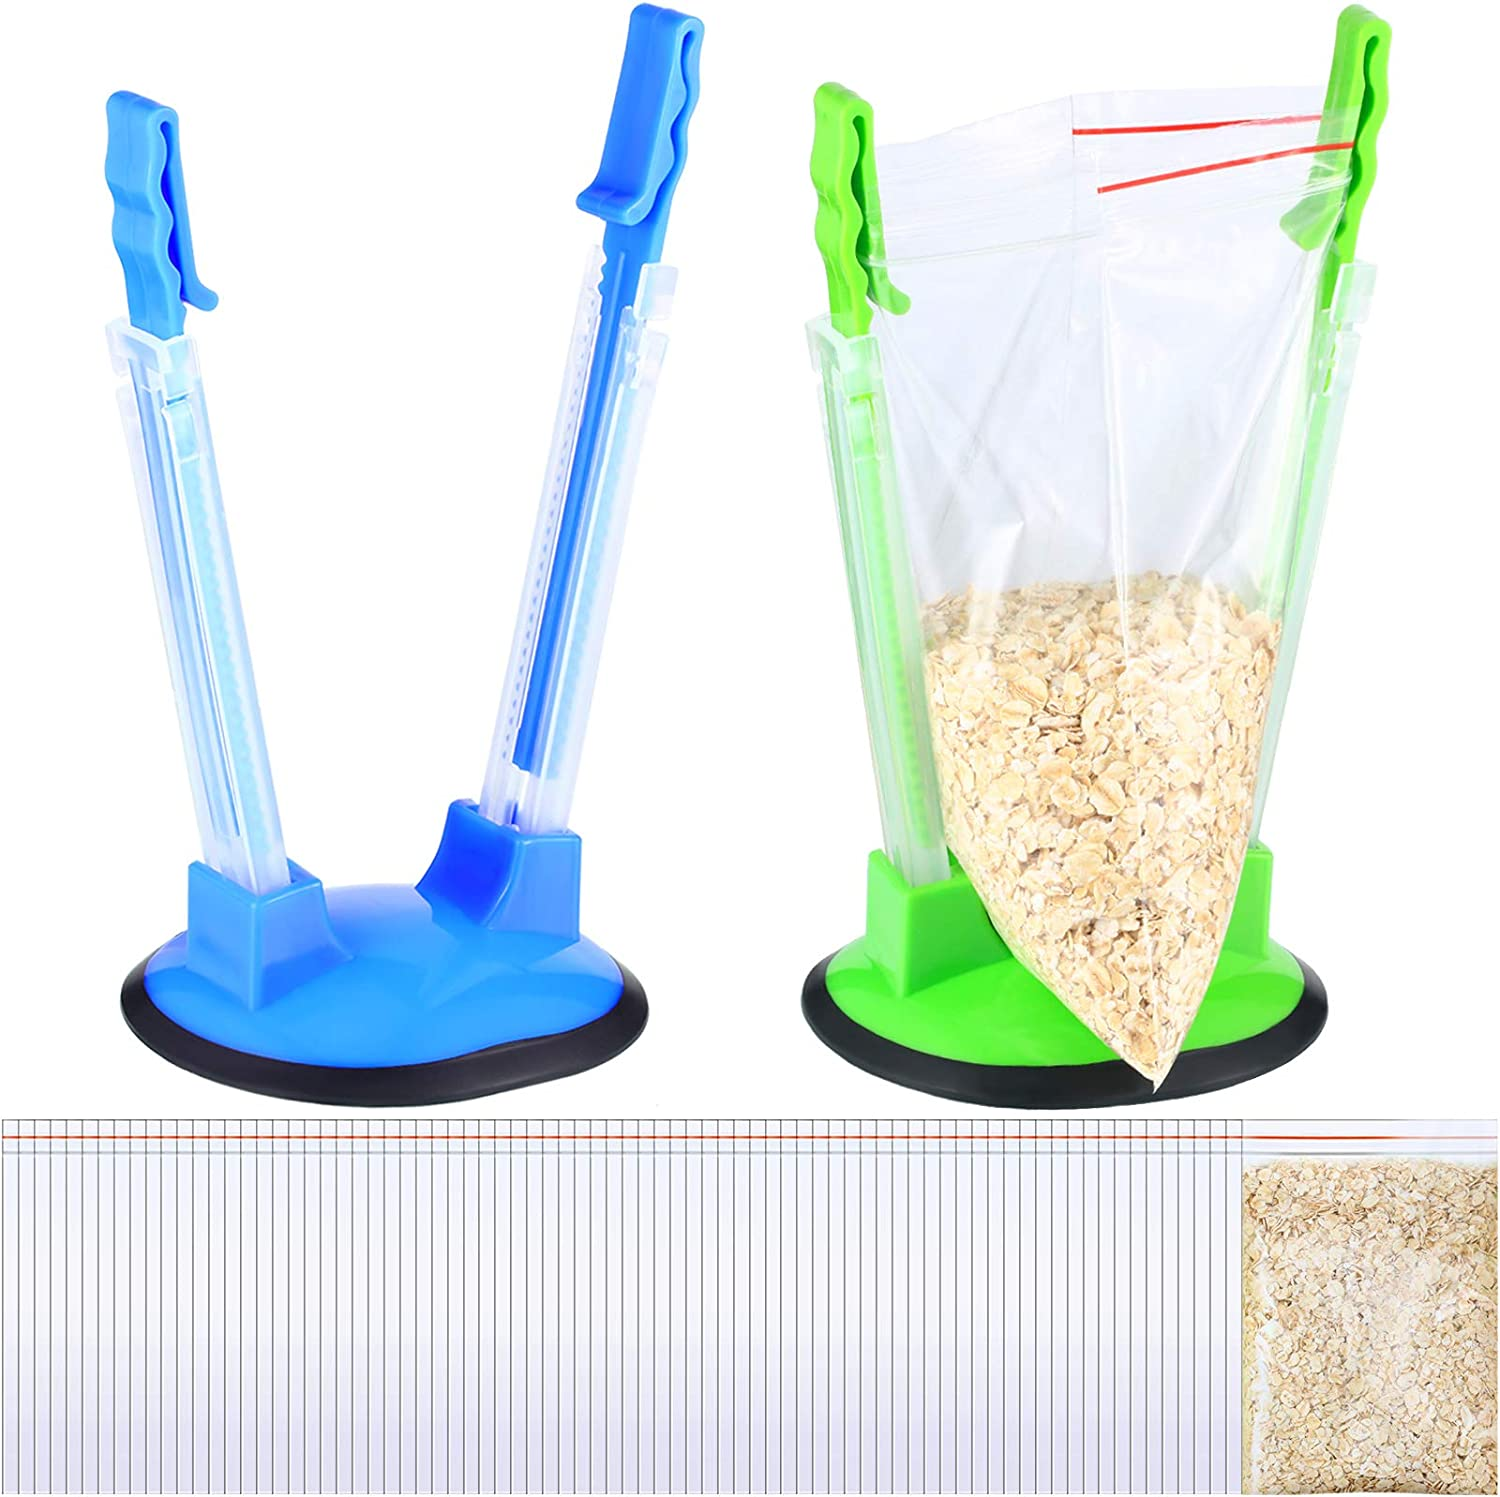 102 Pieces Baggy Rack Stands and Transparent Self Sealing Bags, Include 2 Baggy Rack Holder for Food Prep Bag and 100 Self Sealing OPP Food Plastic Bags for Food Storage Meal Planning Bag Shelves